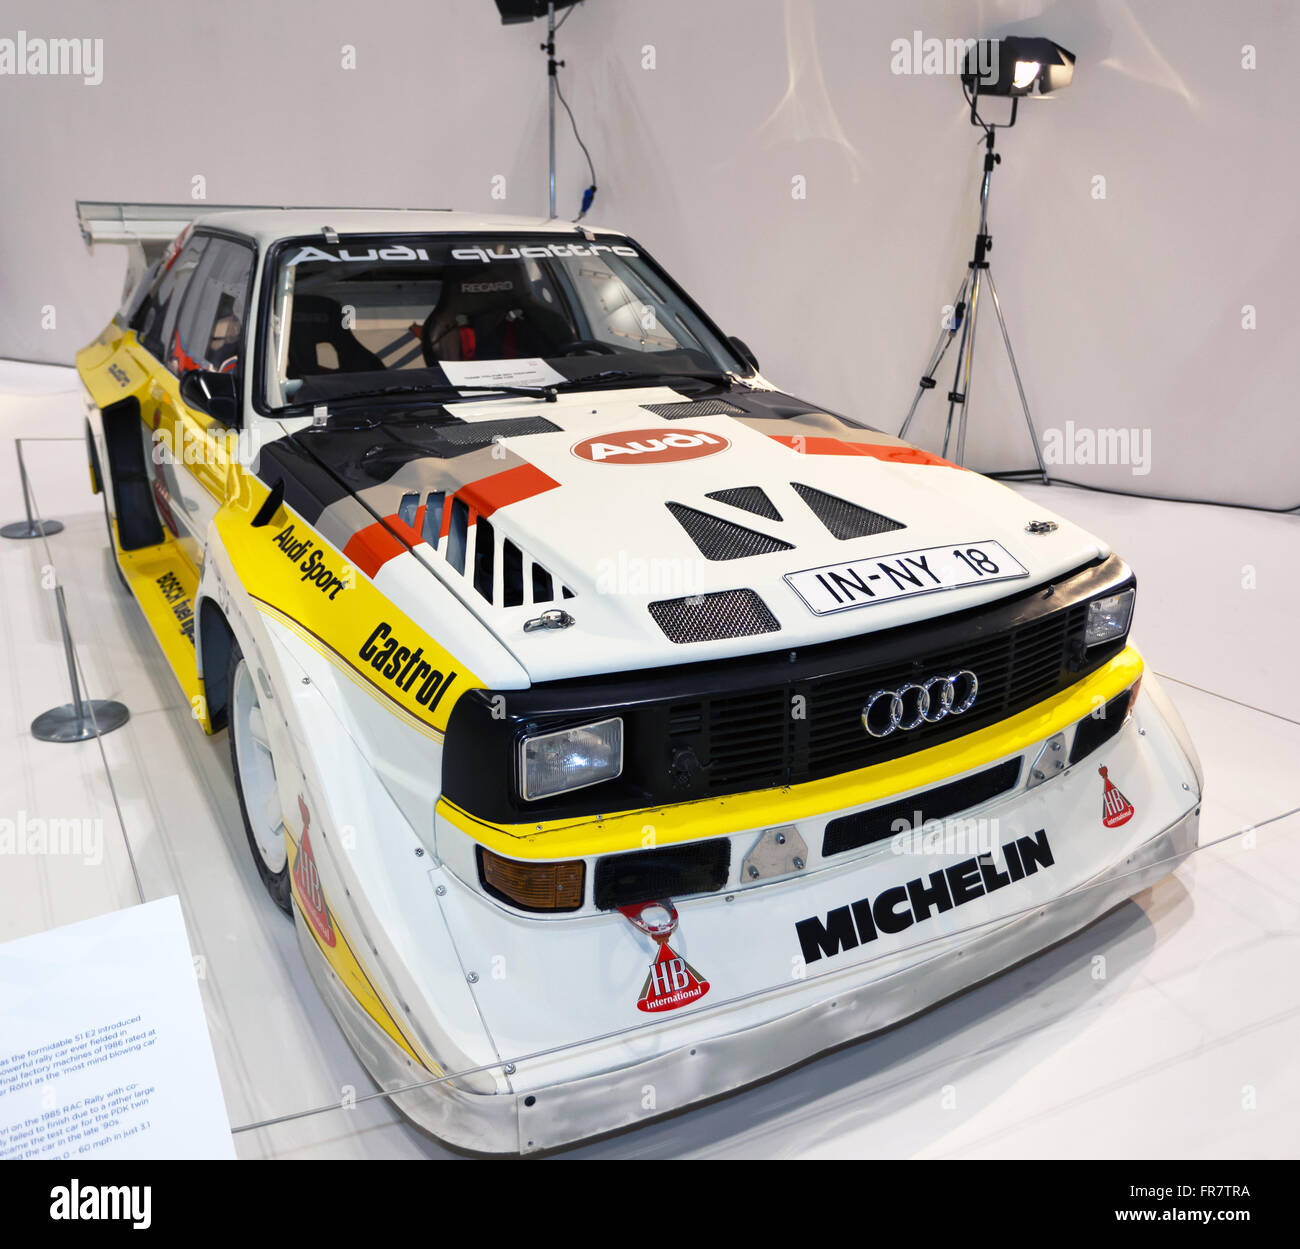 "A Group B Era, Audi Quattro Rally Car, On Display In ""The"